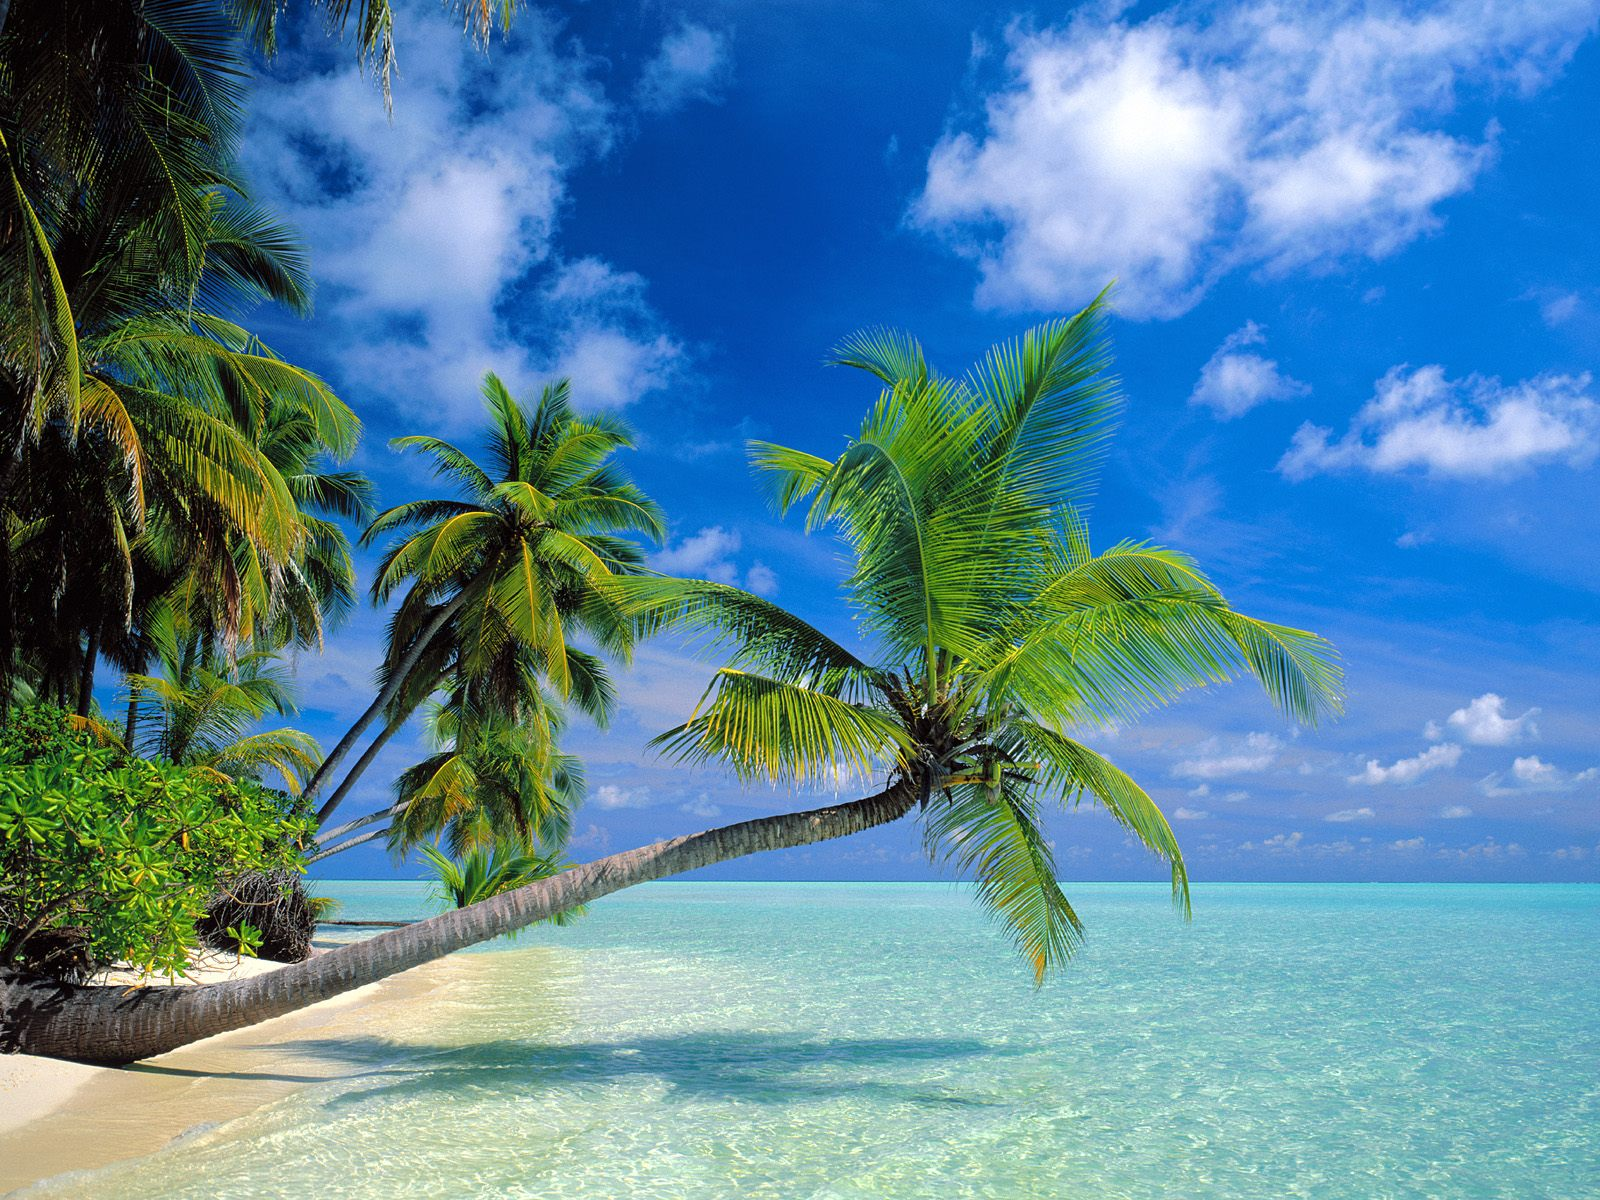 Amazing Beaches Wallpapers 1600x1200 Hd Wallpapers HD